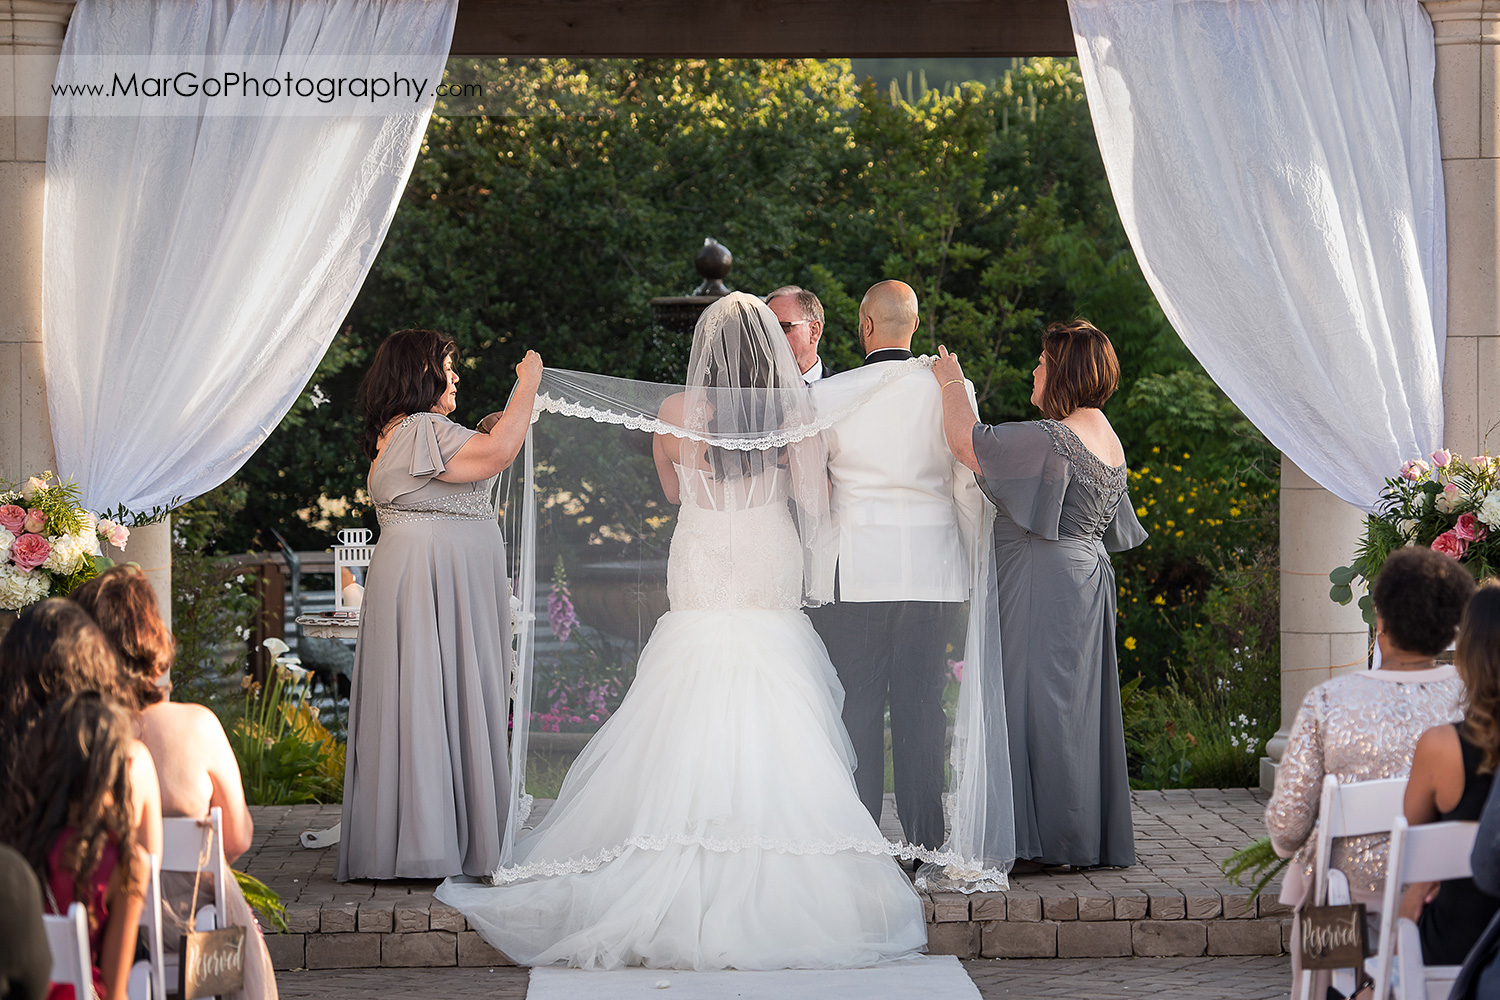 sponsors draping the veil over bride and groom during wedding ceremony at Sunol's Casa Bella